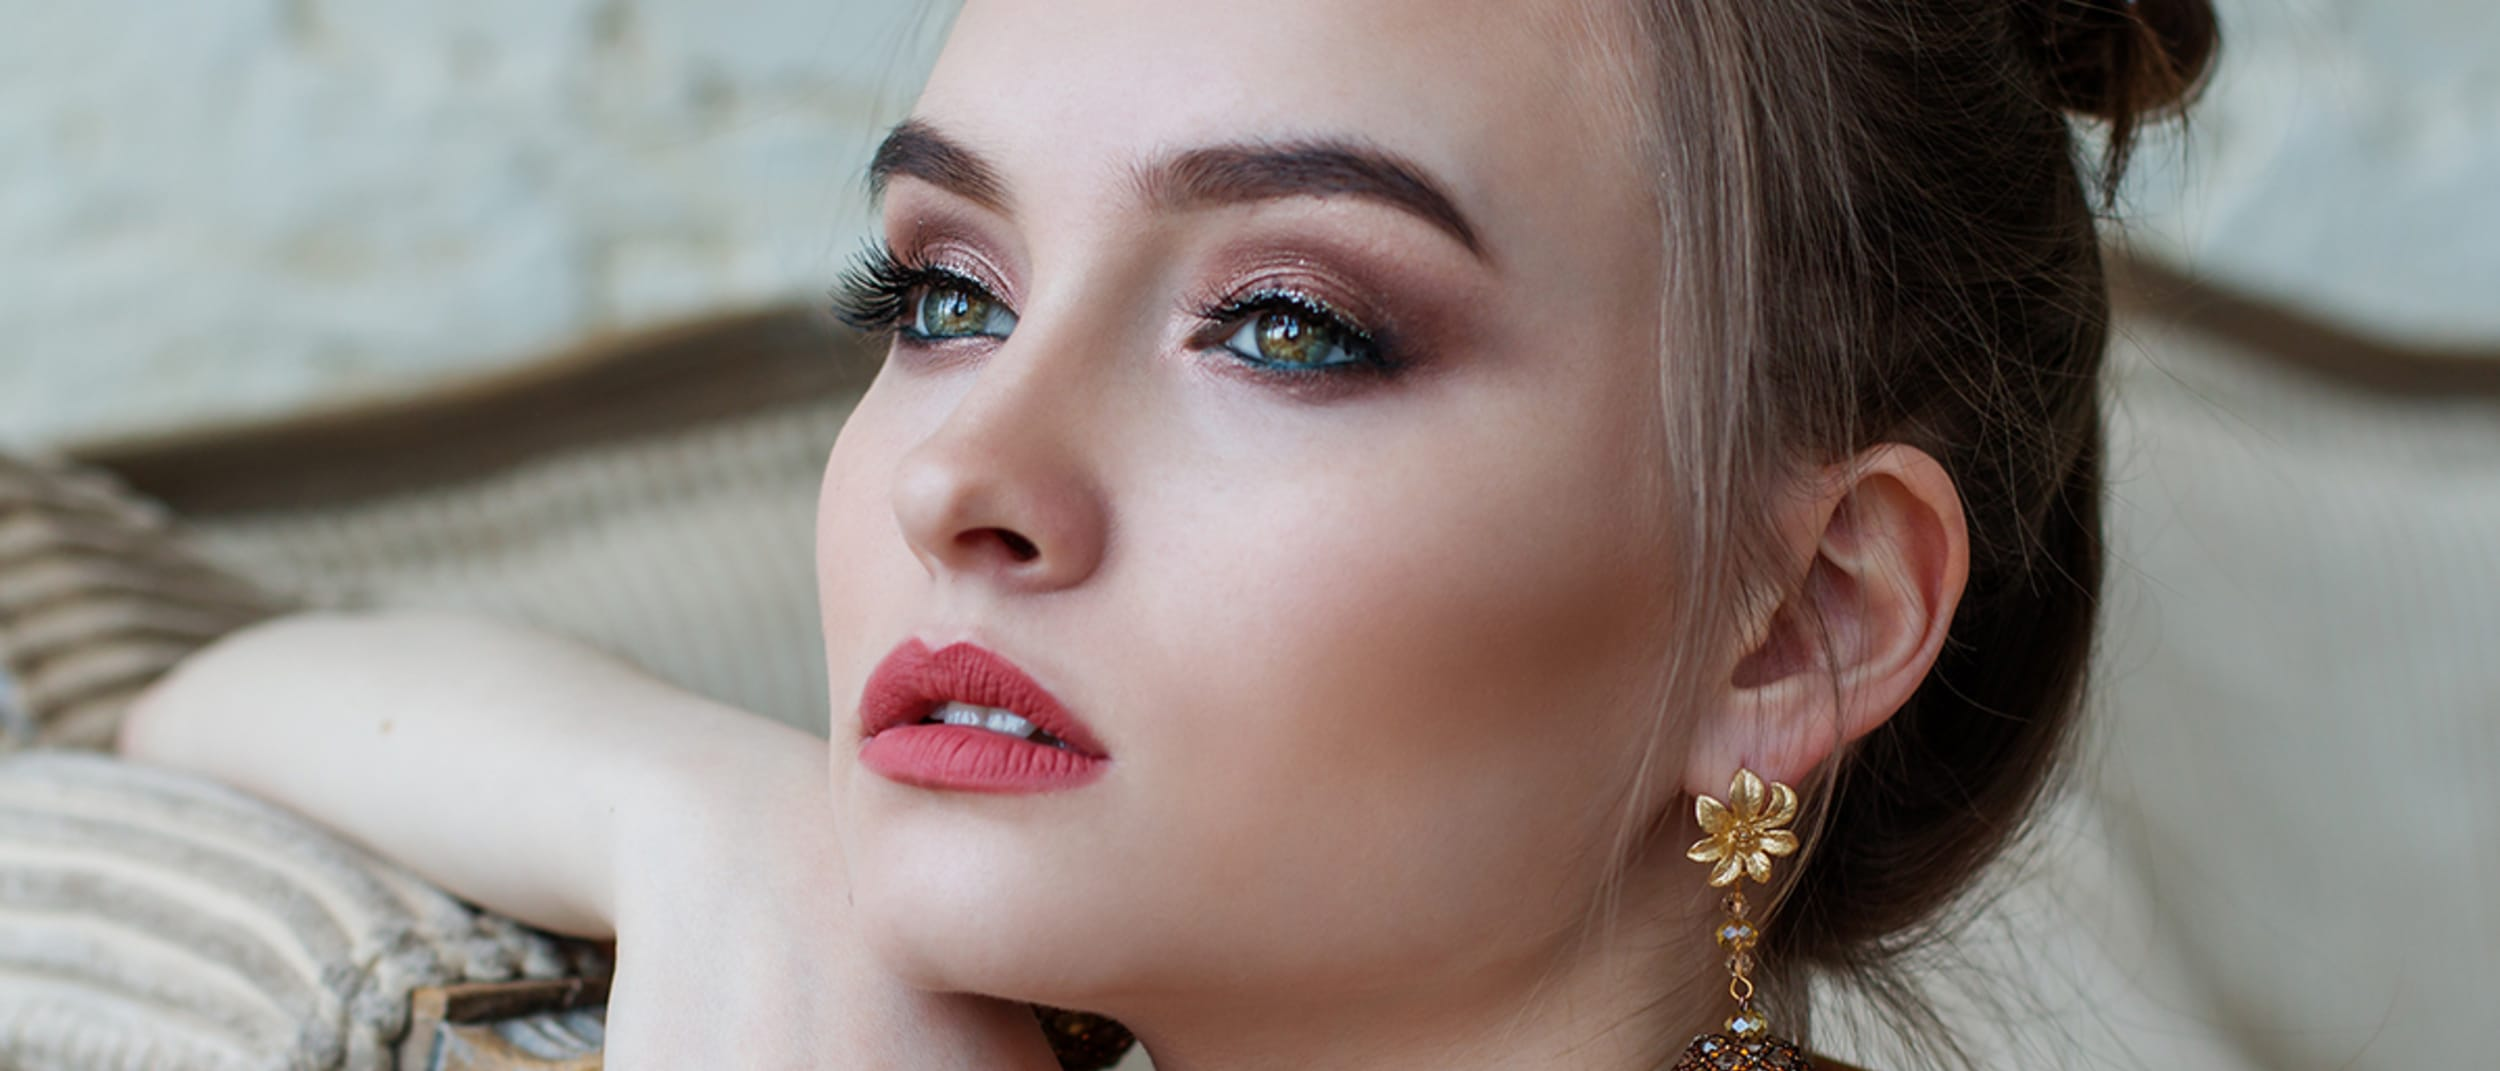 Complimentary makeup touch-ups